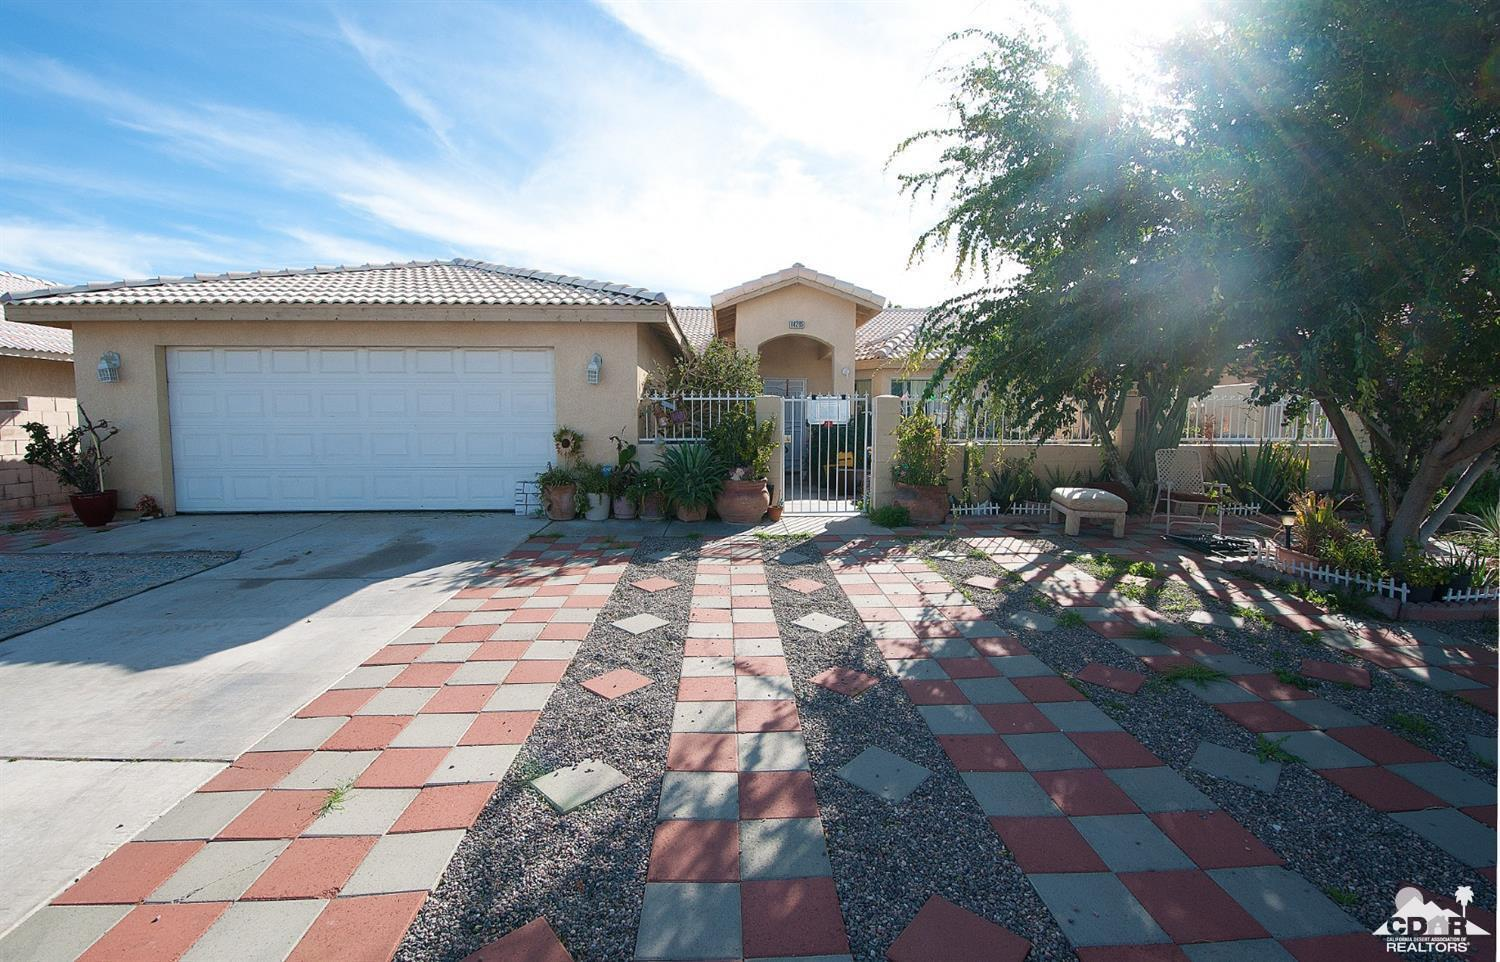 Spacious home with beautiful views of our scenic Mountains. On a 7481 sf lot. 3 Bedrooms, 2 Baths make up this great home. Conveniently located walking distance from Landau School, and minutes away from Shopping, Parks, and I-10 Freeway!